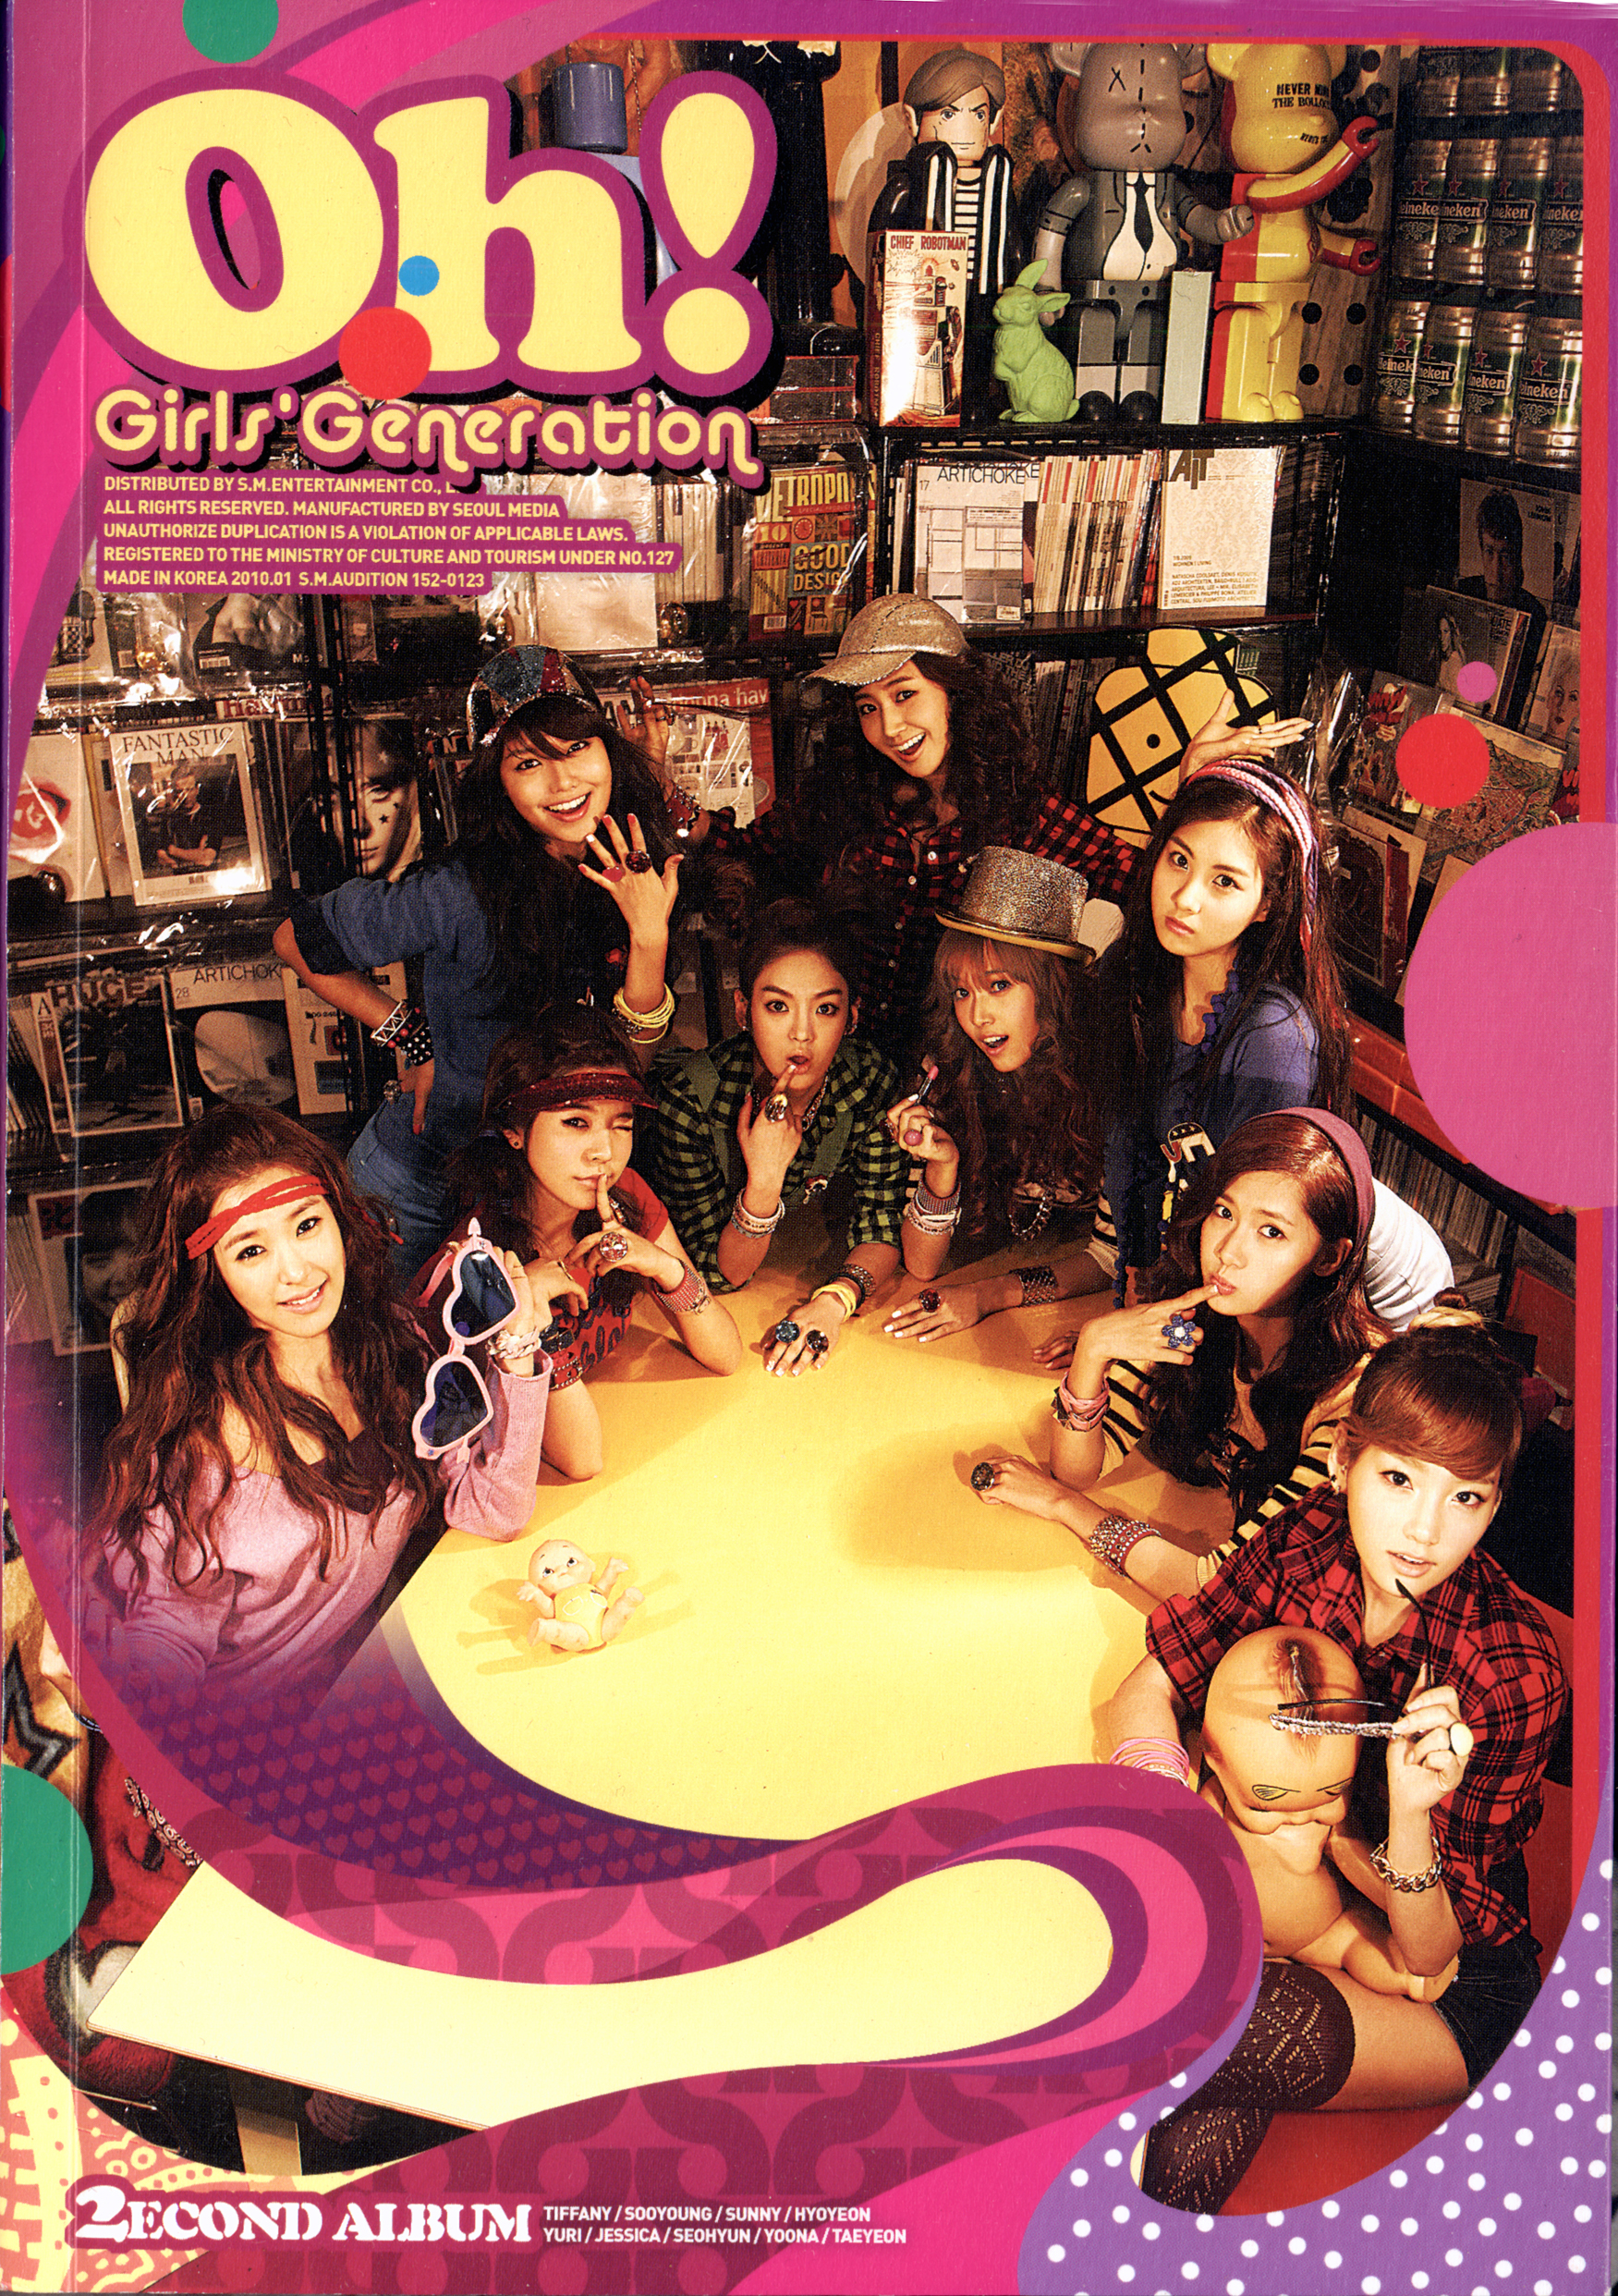 20181214.2355.060 Girls' Generation (SNSD) - Oh! (booklet) 001 (JPOP.ru).jpg